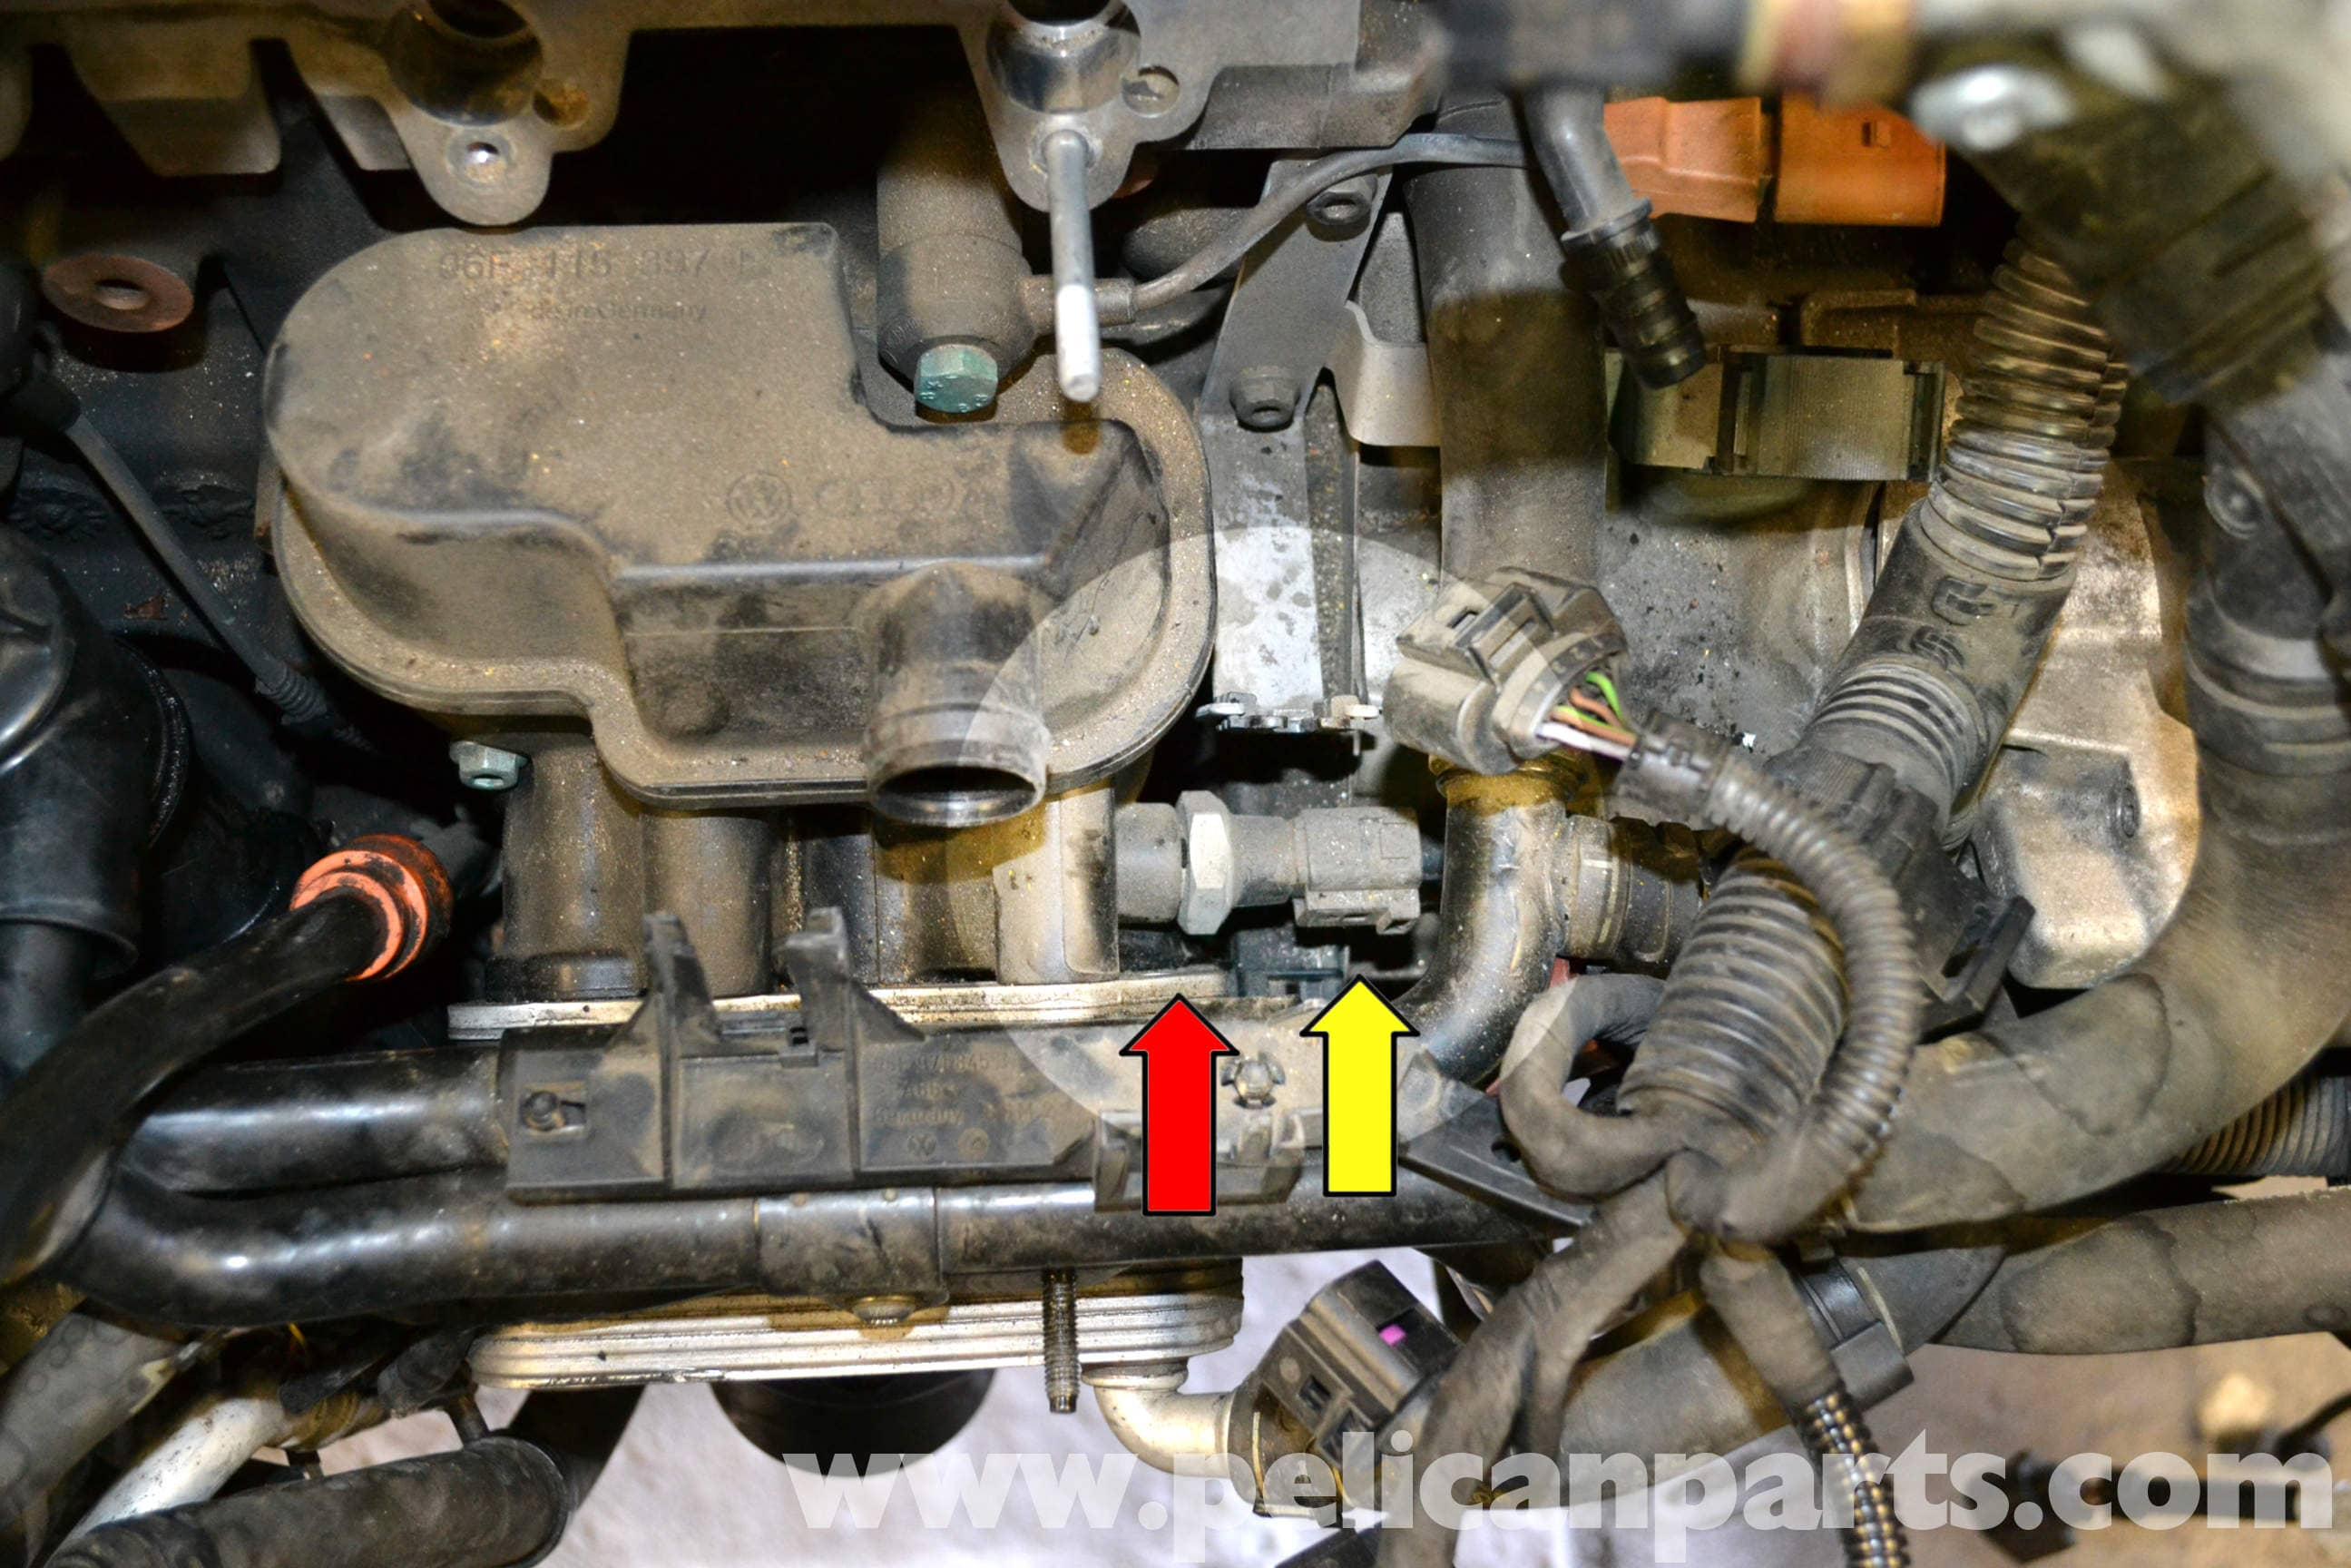 Fabulous Volkswagen Golf Gti Mk V Oil Pressure Switch Replacement 2006 2009 Wiring Cloud Overrenstrafr09Org